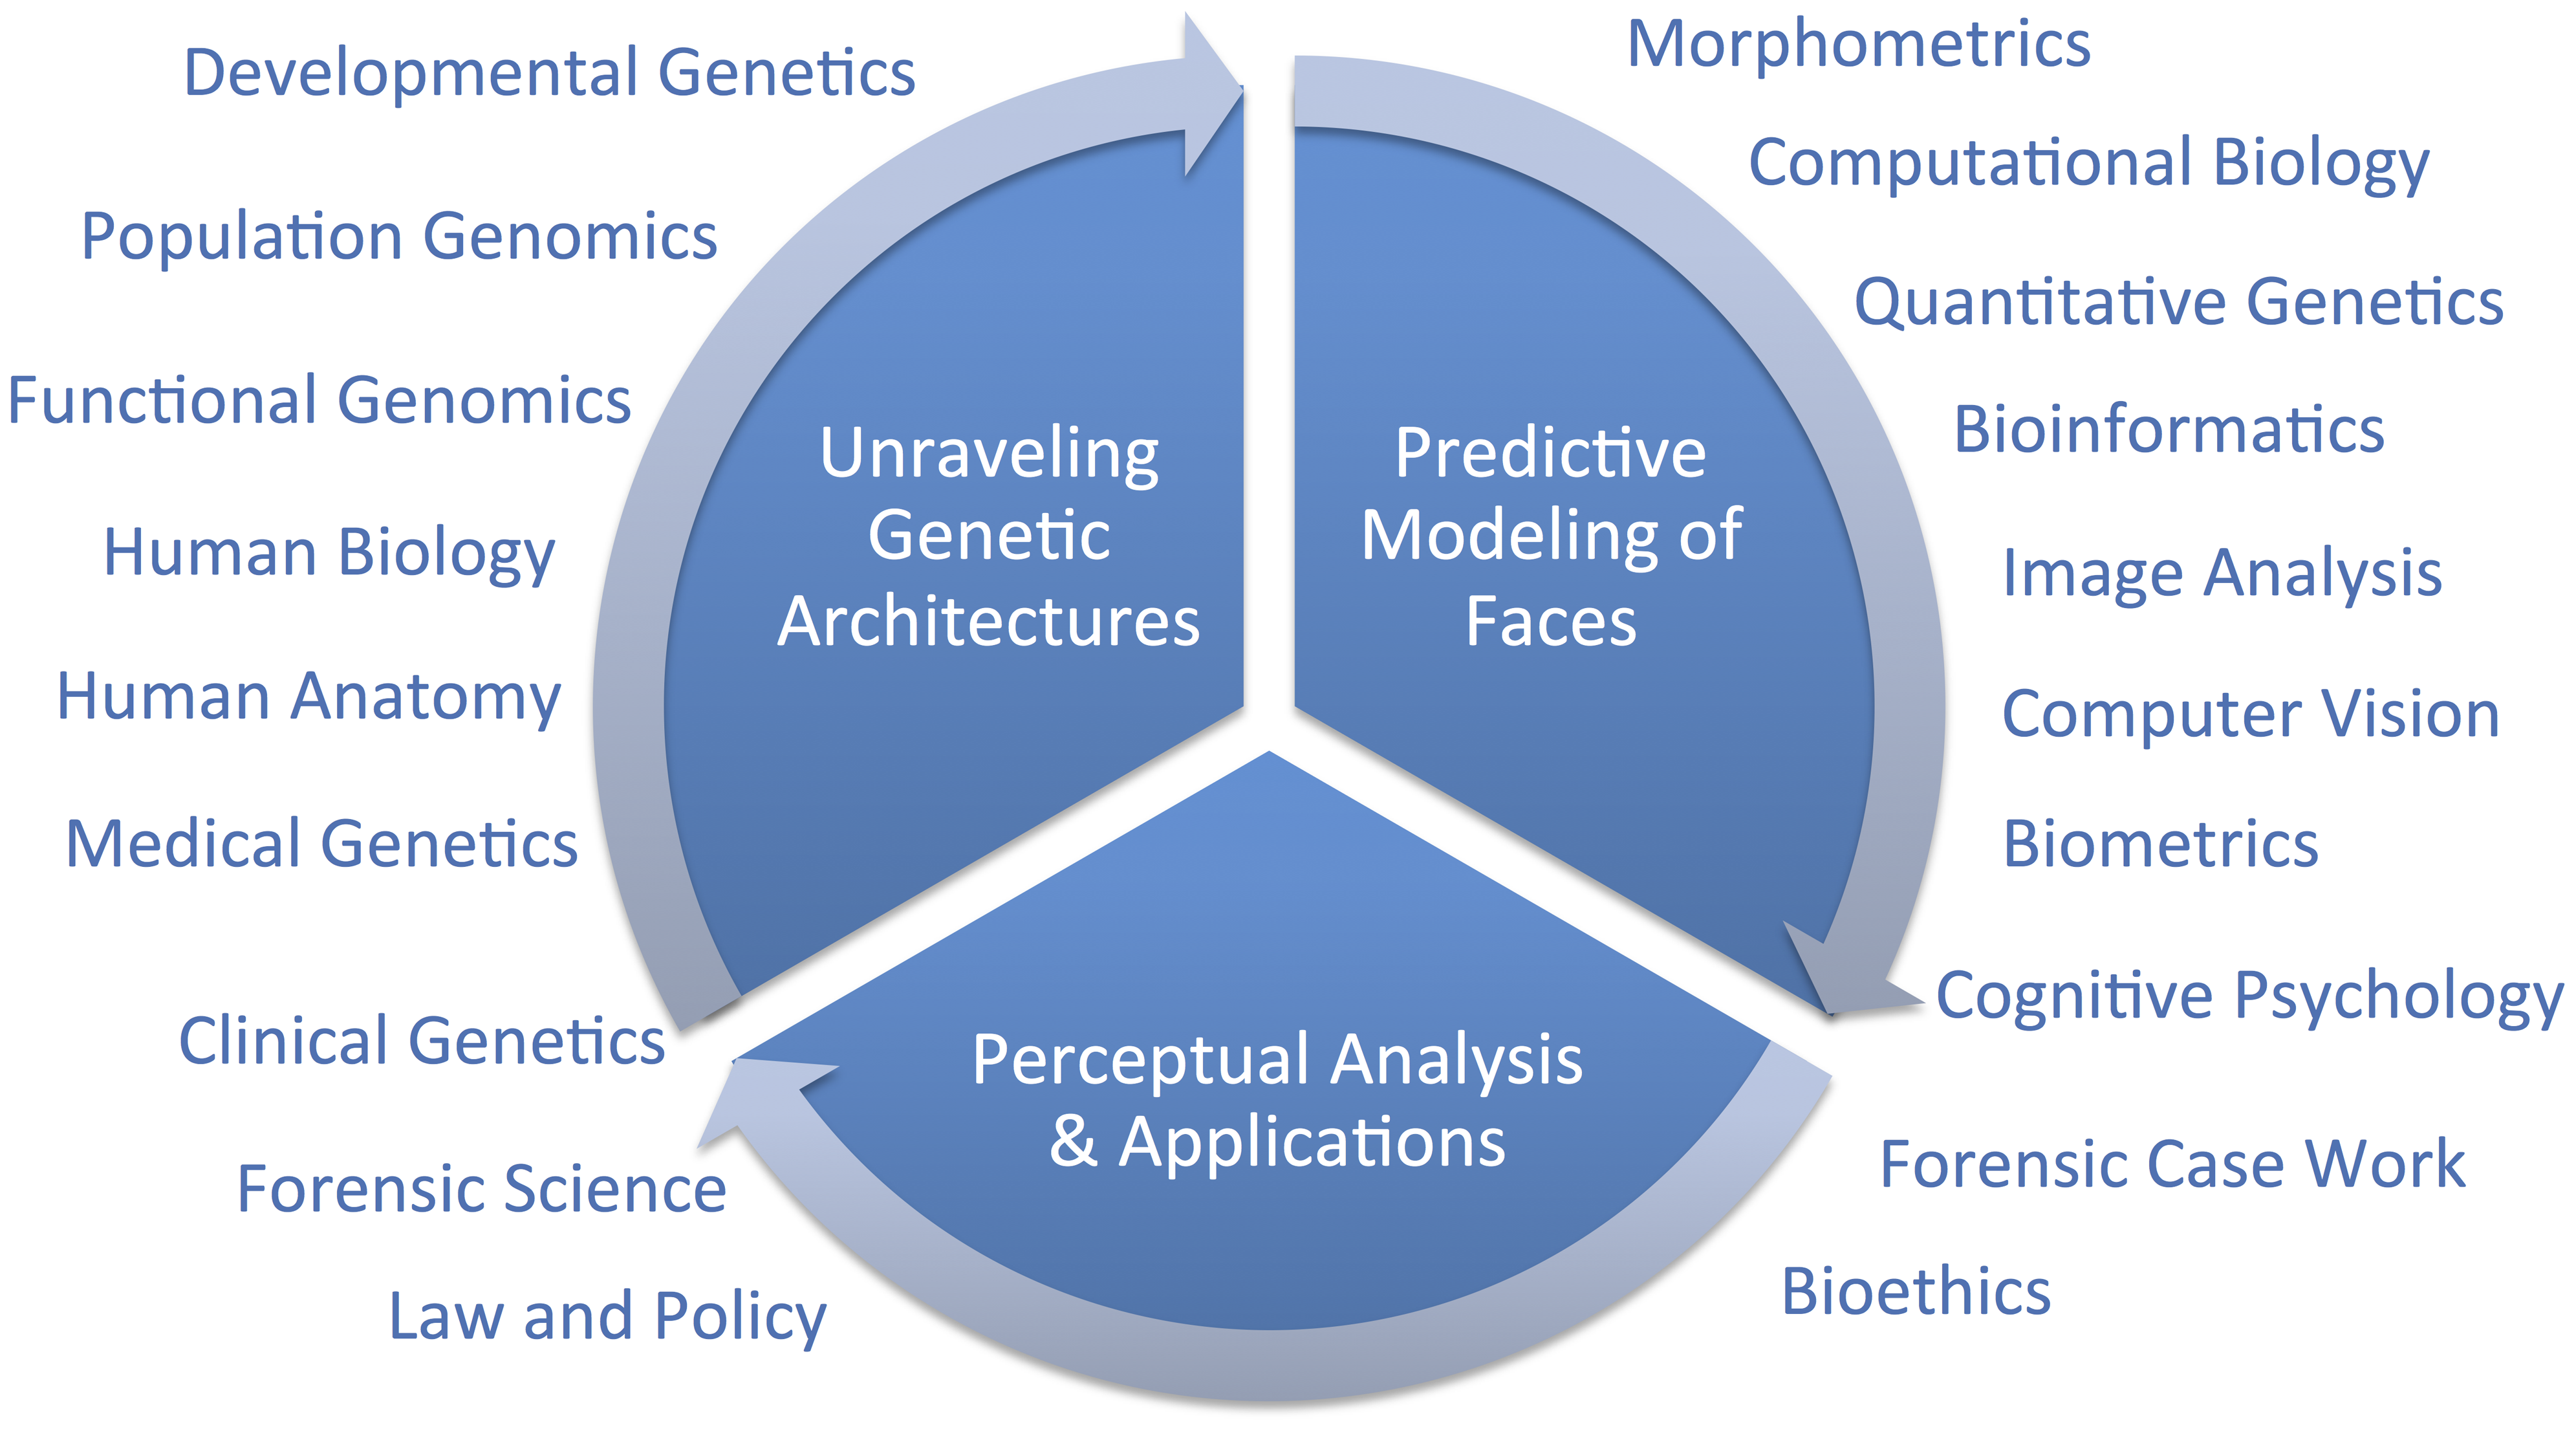 Diagram of a framework for research on modeling facial features from DNA.